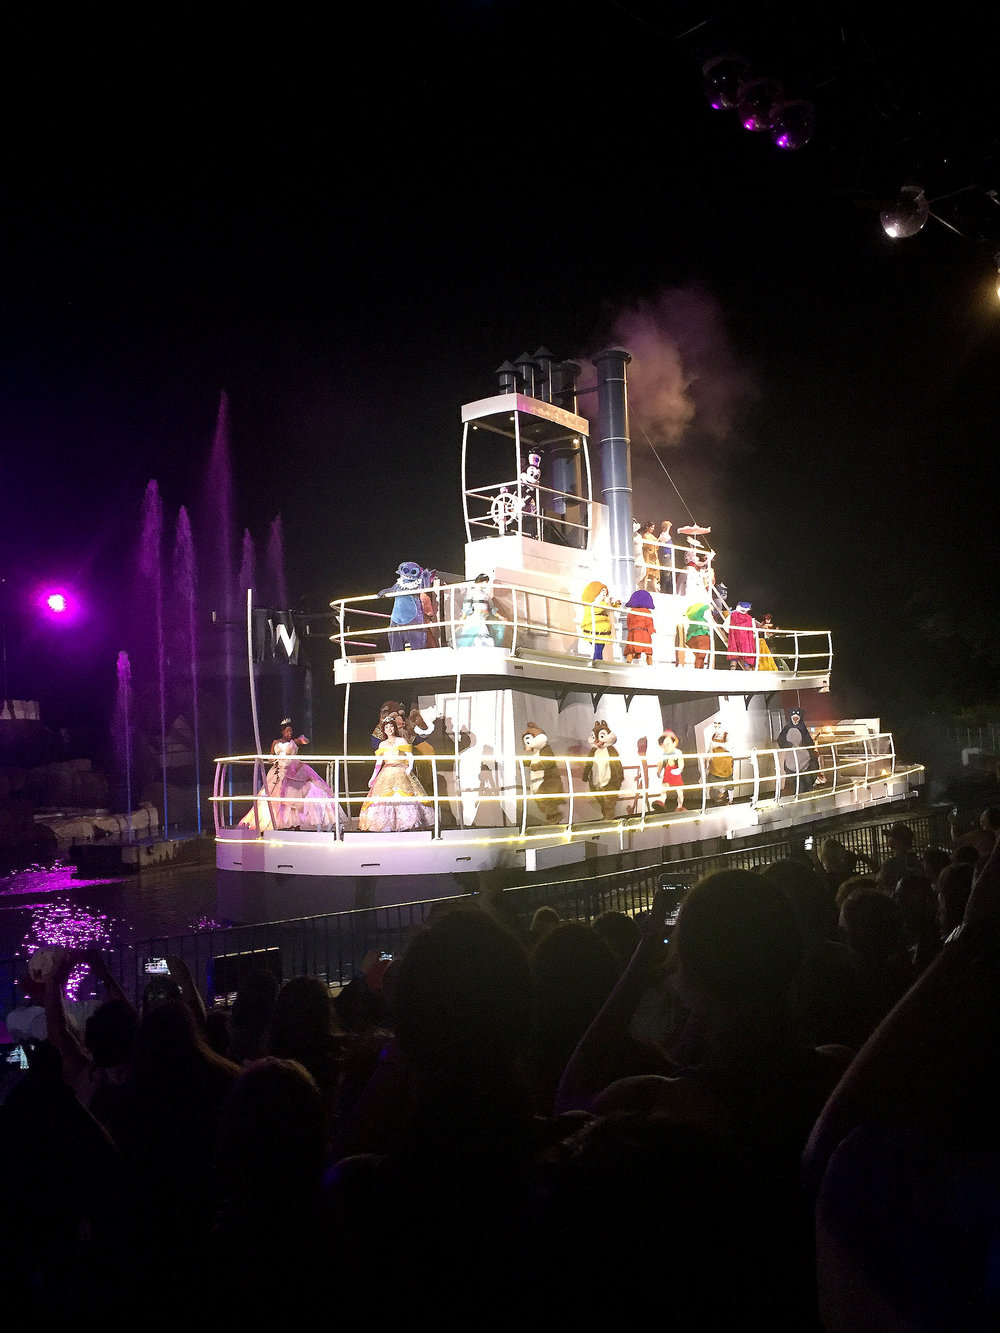 My favorite part of Fantastic has to be all the characters coming out on the riverboat at the end! And look! Steamboat Willie is driving it!